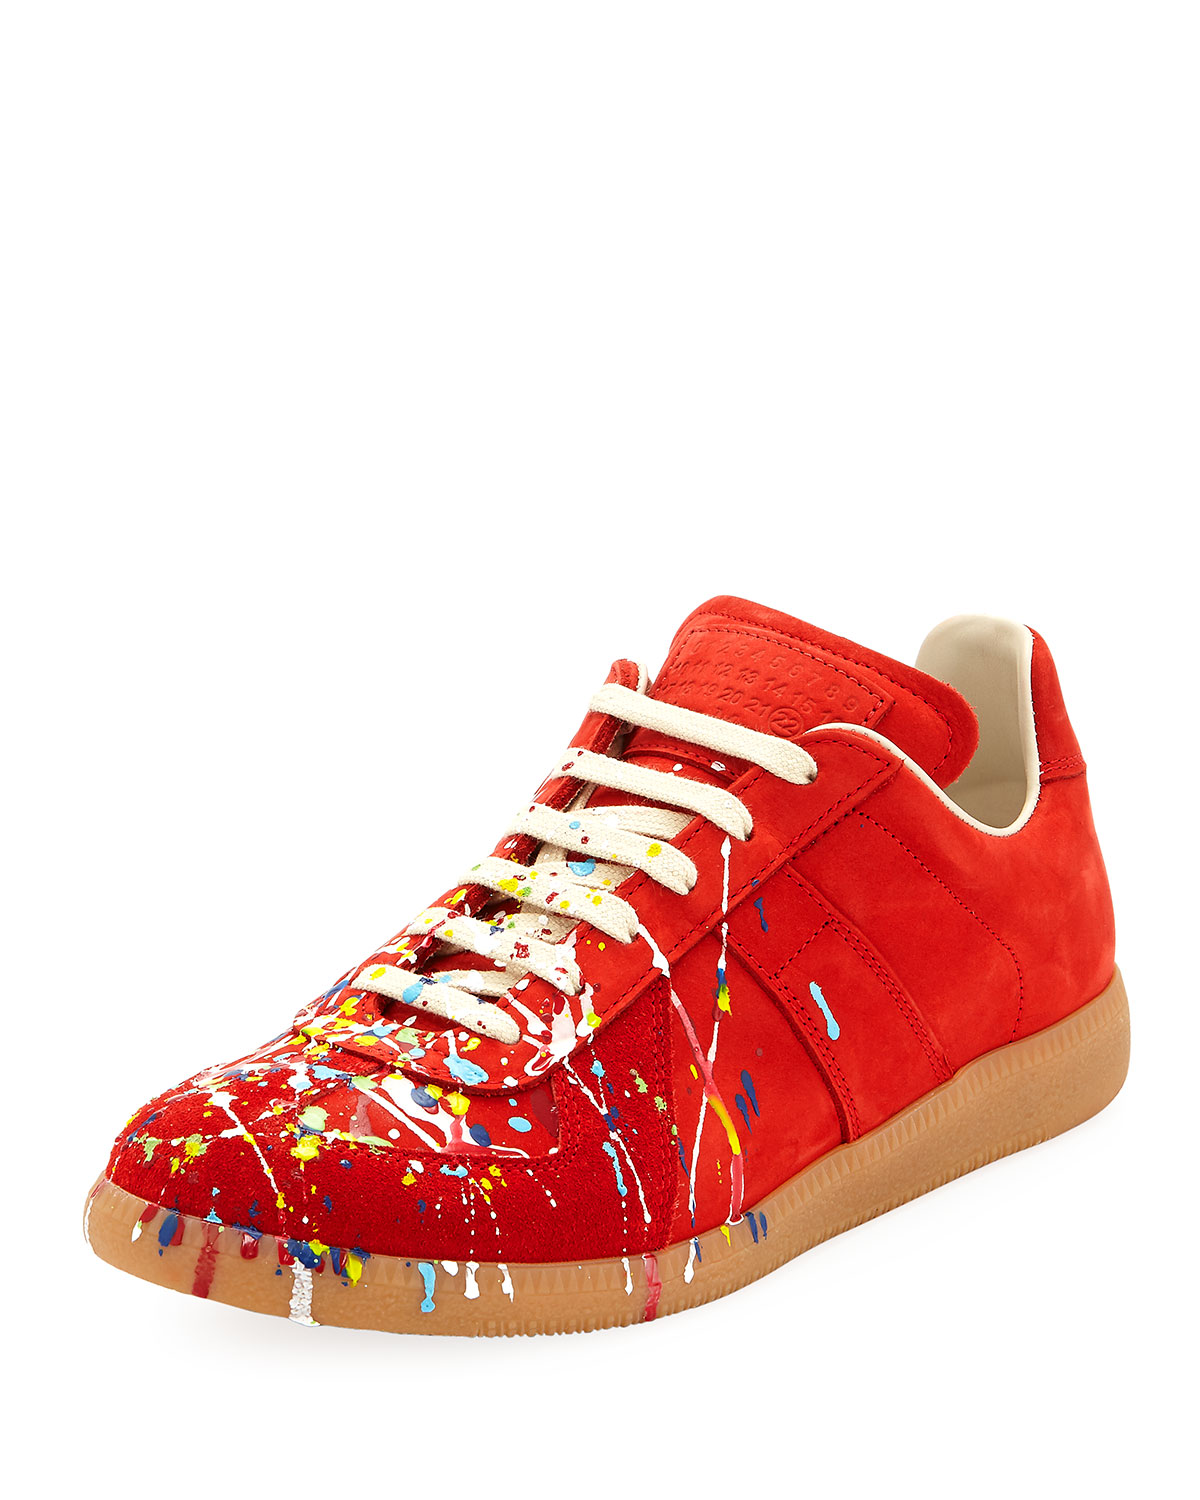 e00af16101ef Maison Margiela Men s Replica Paint-Splatter Suede Low-Top Sneakers ...